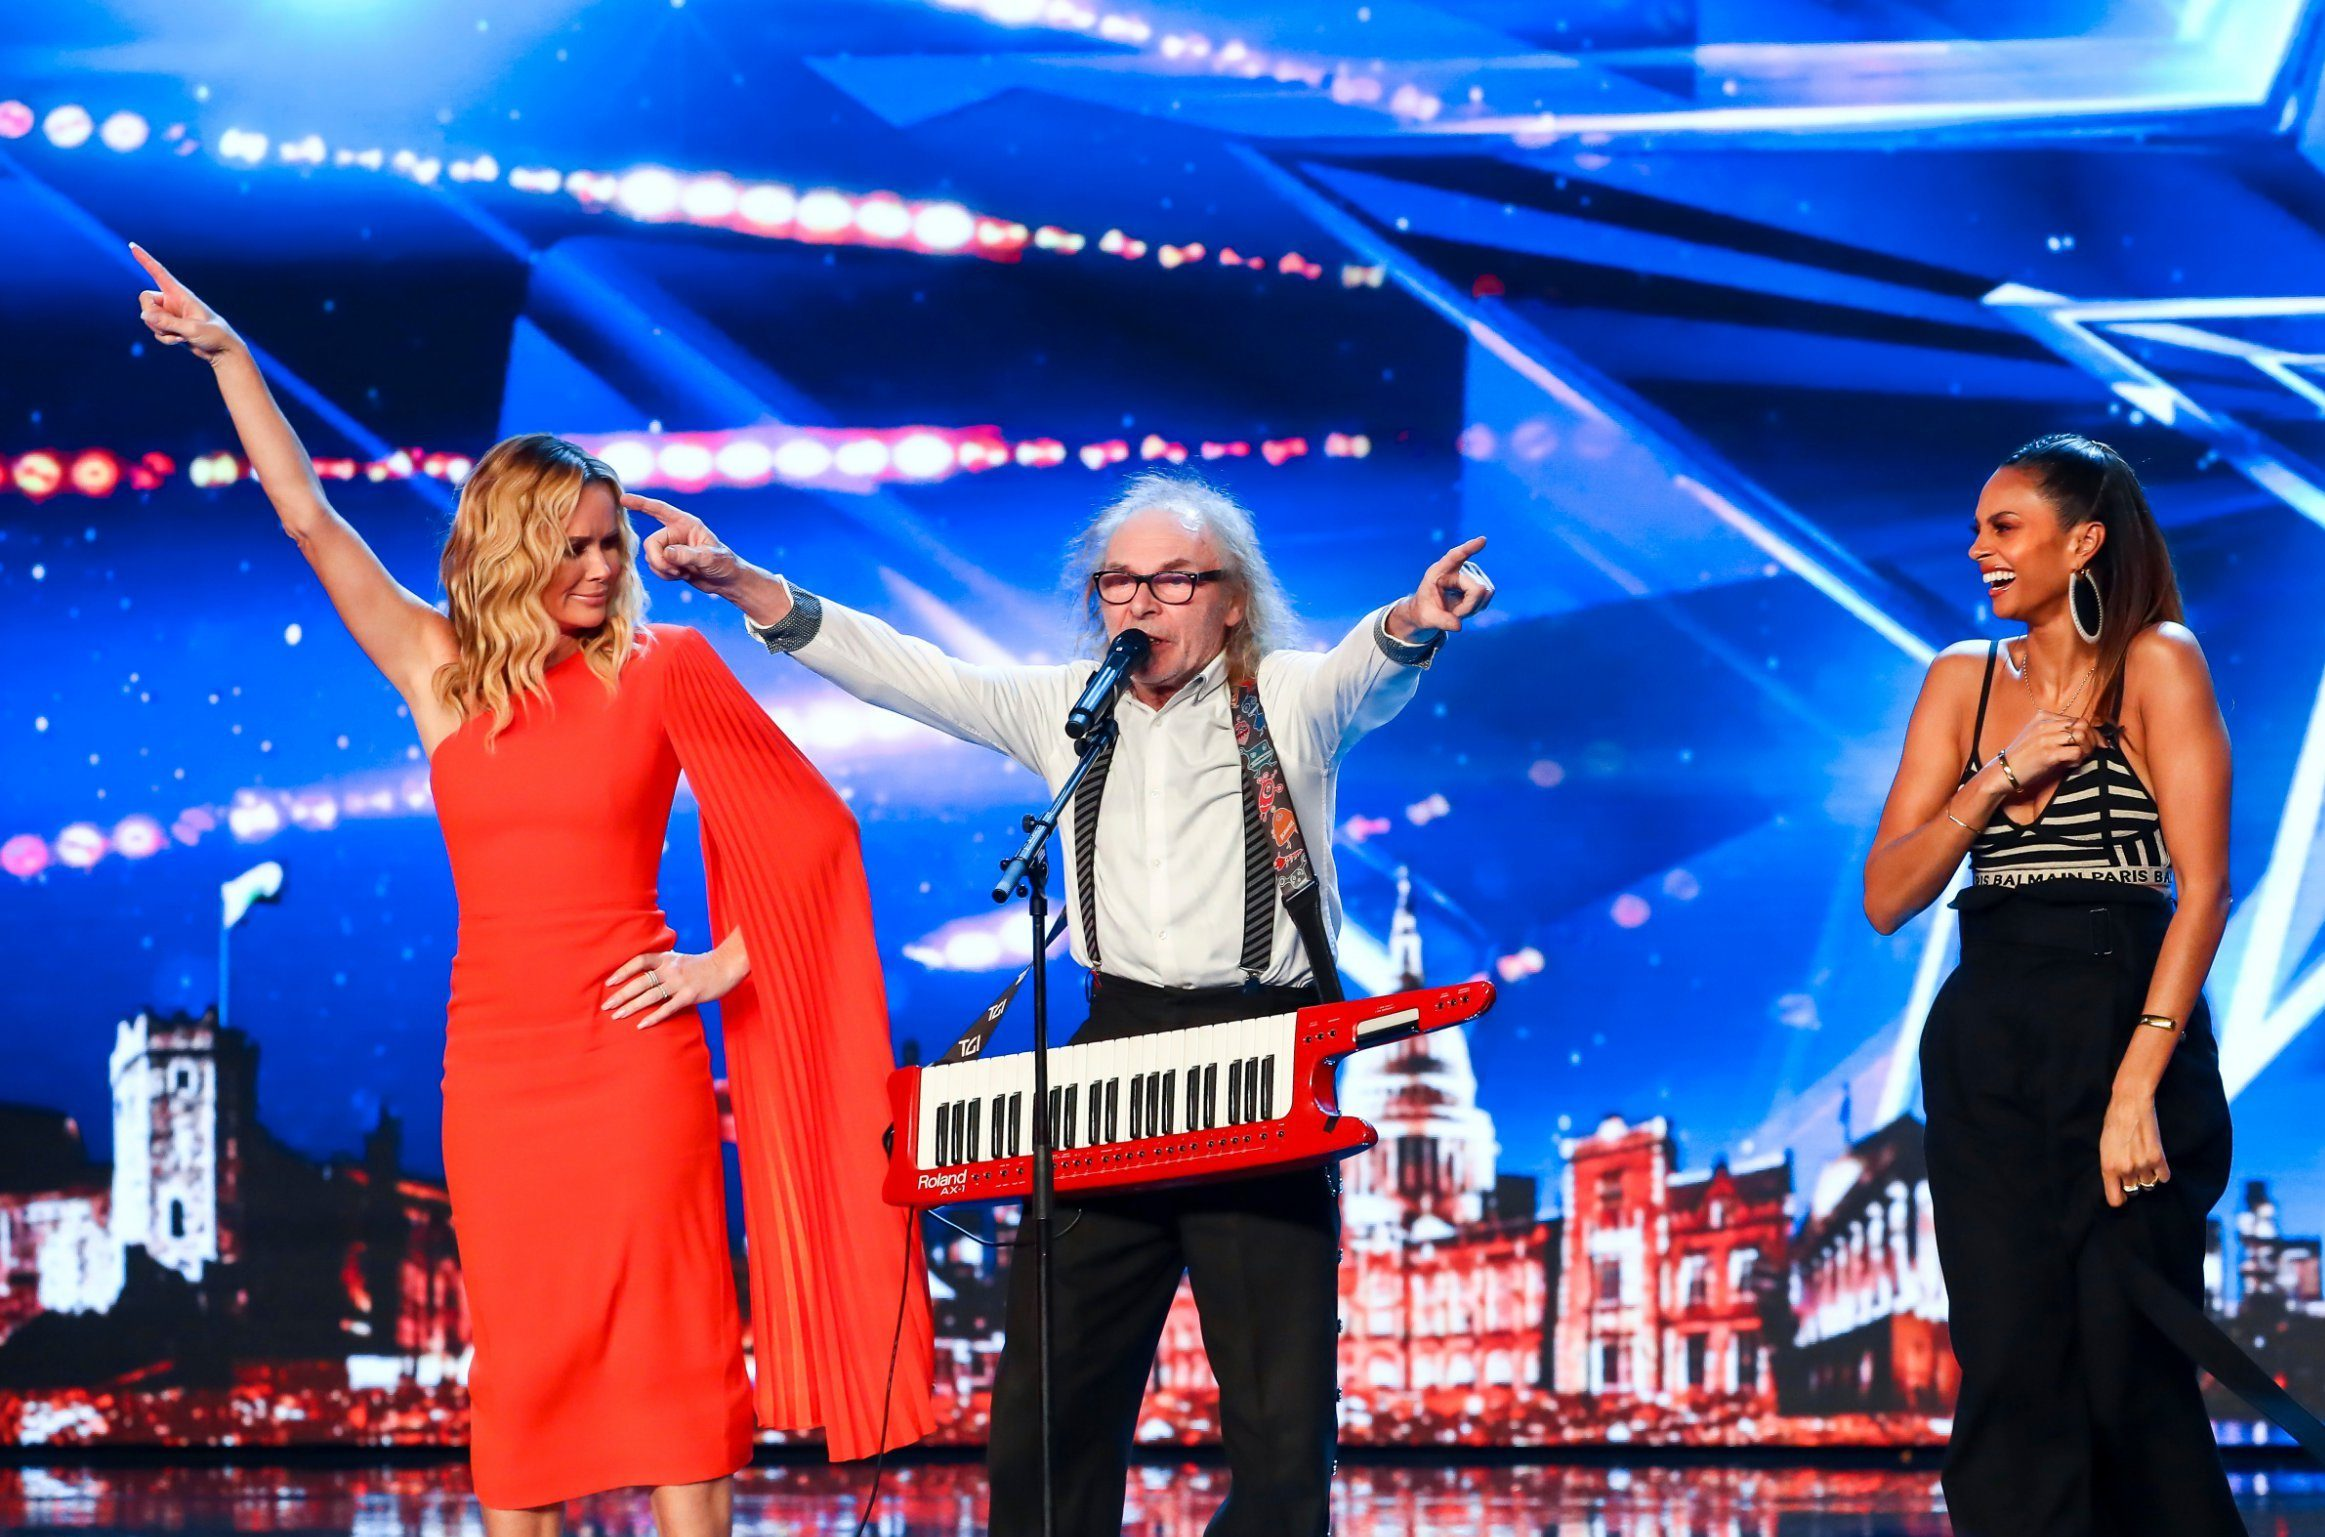 STRICT EMBARGO - NO USE BEFORE 12:00PM GMT (MIDDAY) SATURDAY 11 MAY 2019 - Editorial use only. No book publishing. Mandatory Credit: Photo by Dymond/Thames/Syco/REX (10234172au) Russell T Bird aged 71. 'Britain's Got Talent' TV Show, Series 13, Episode 6, UK - 11 May 2019